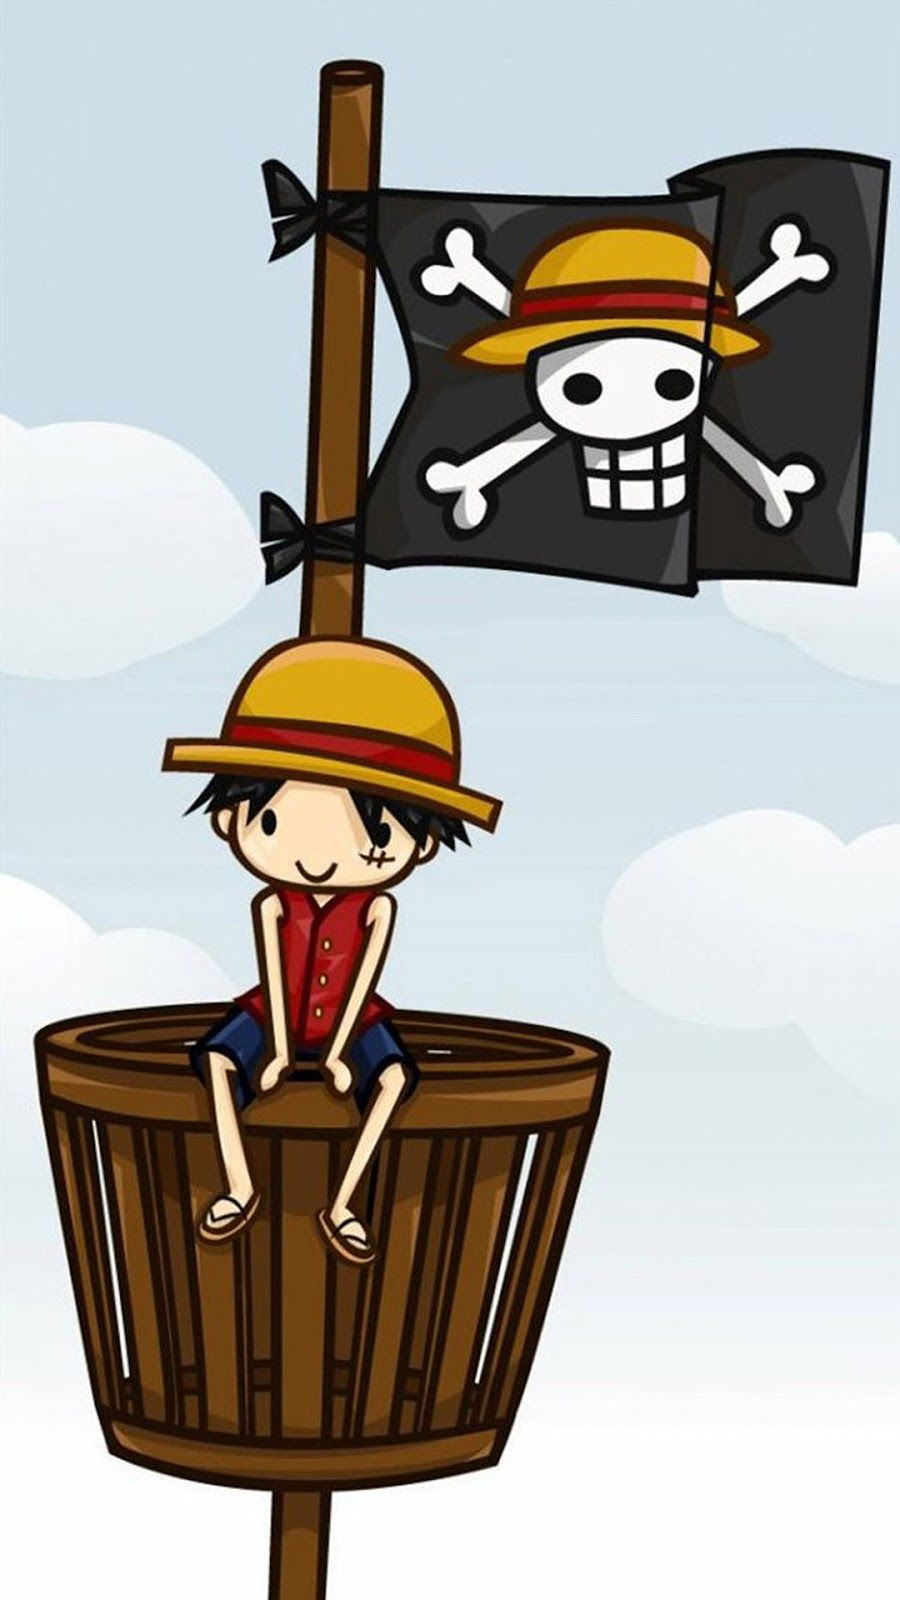 Wallpaper iphone one piece - One Piece Luffy Iphone 7 Iphone 7 Plus Wallpaper